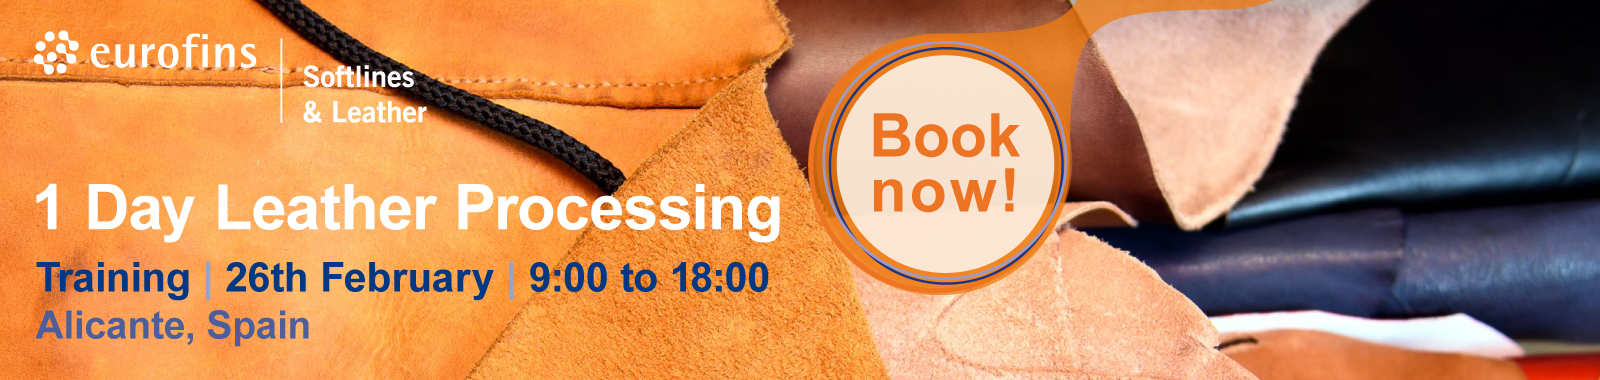 1 Day Leather Processing Course